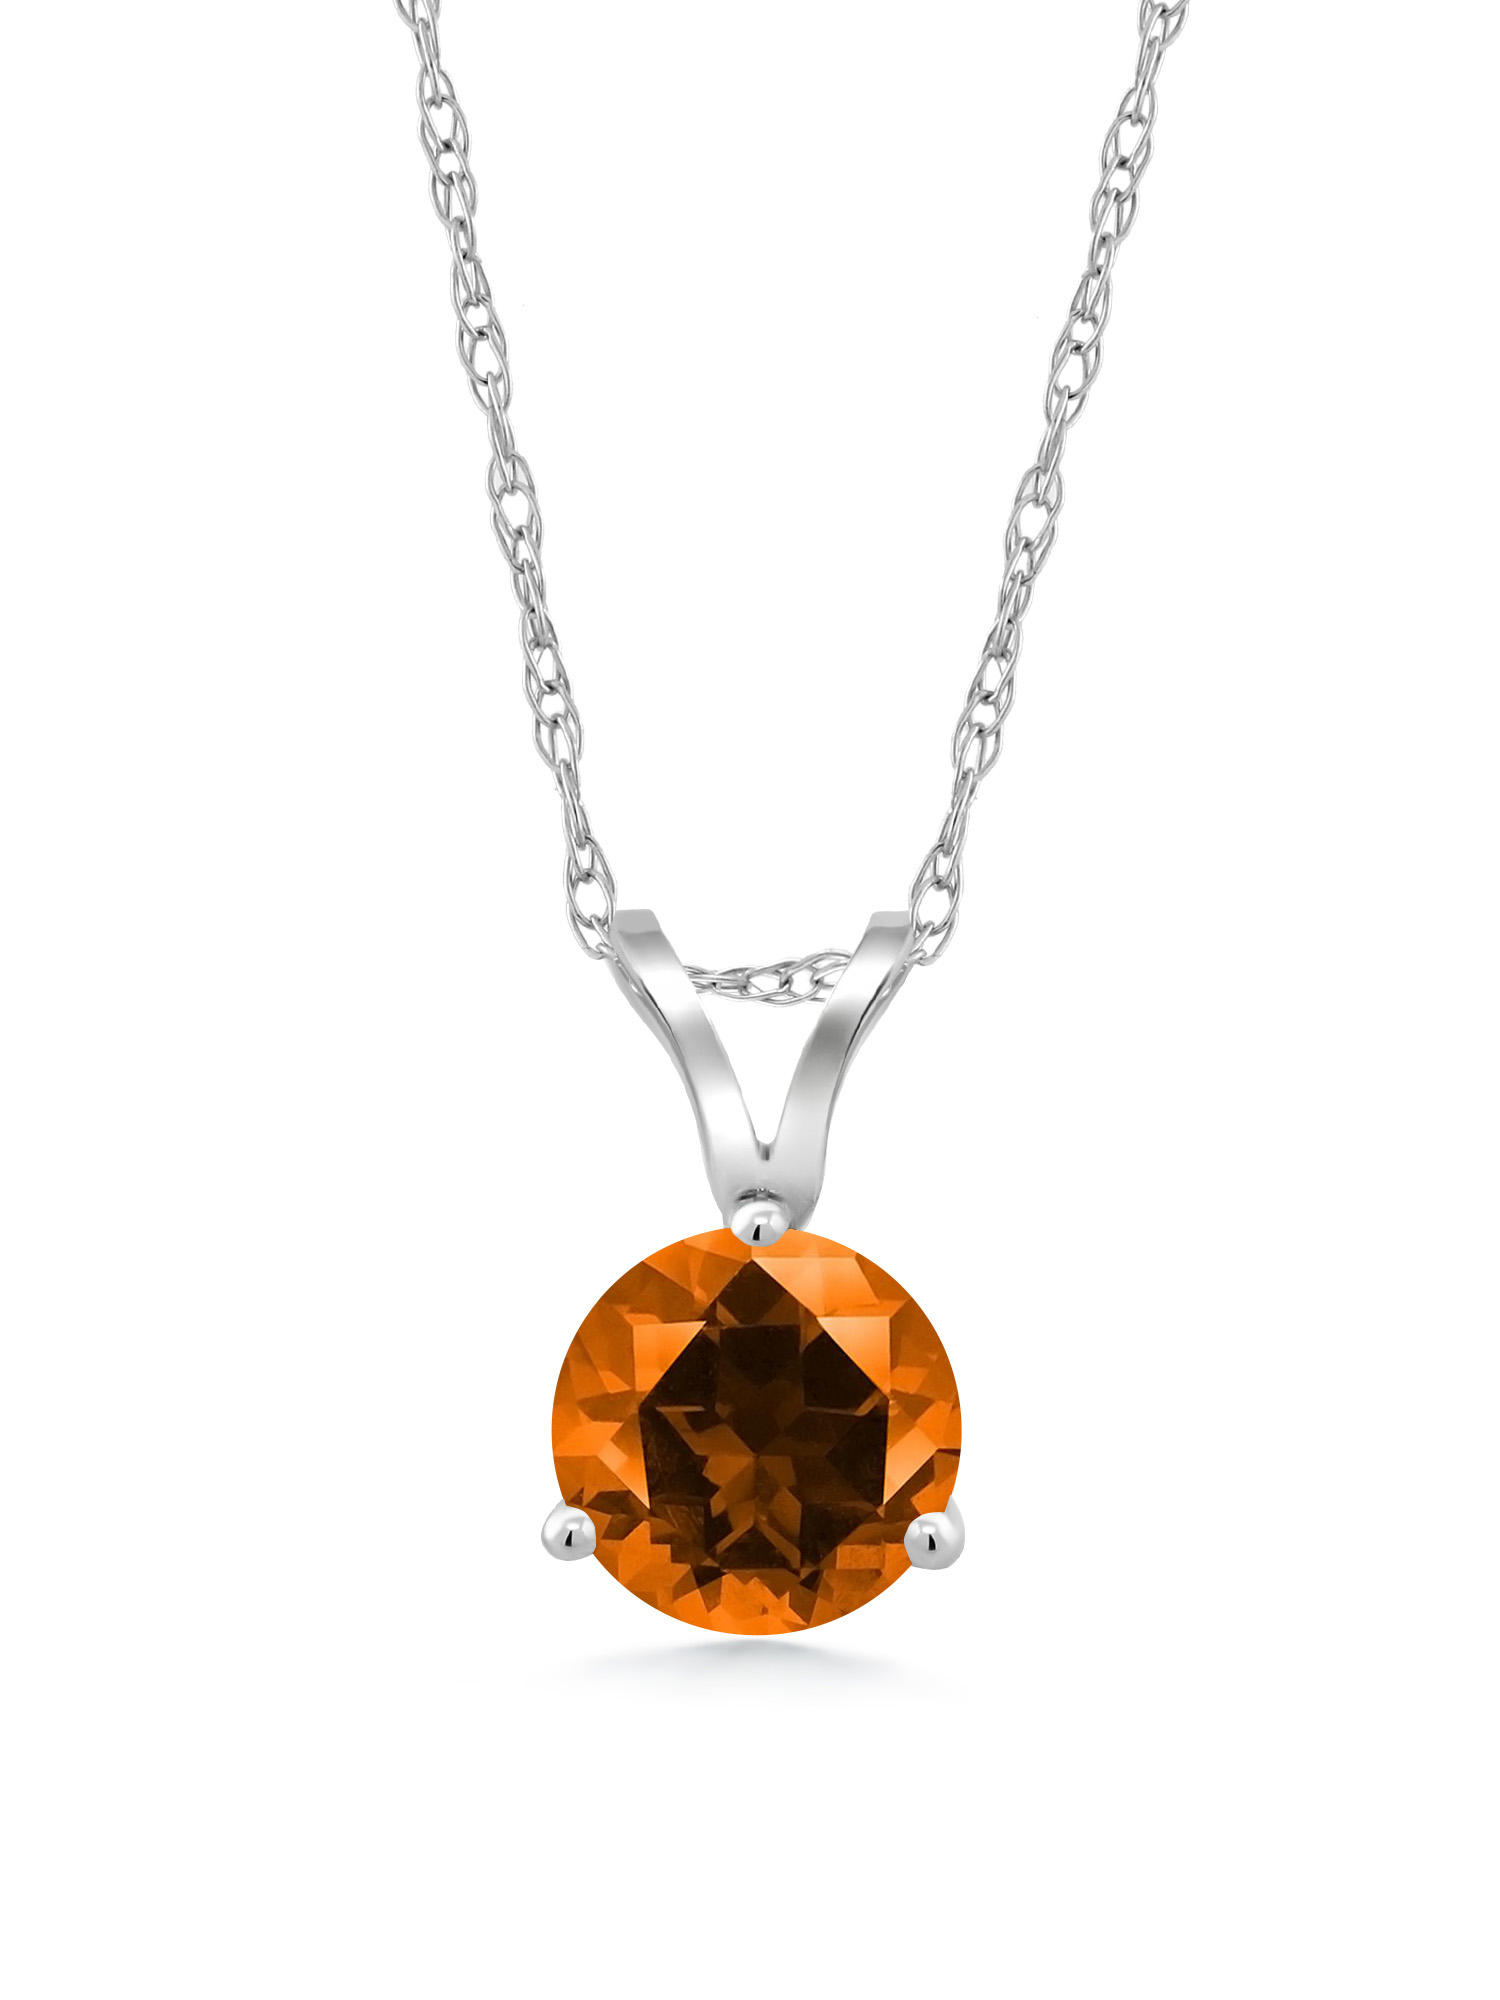 18K White Gold Pendant Set with Round Poppy Topaz from Swarovski